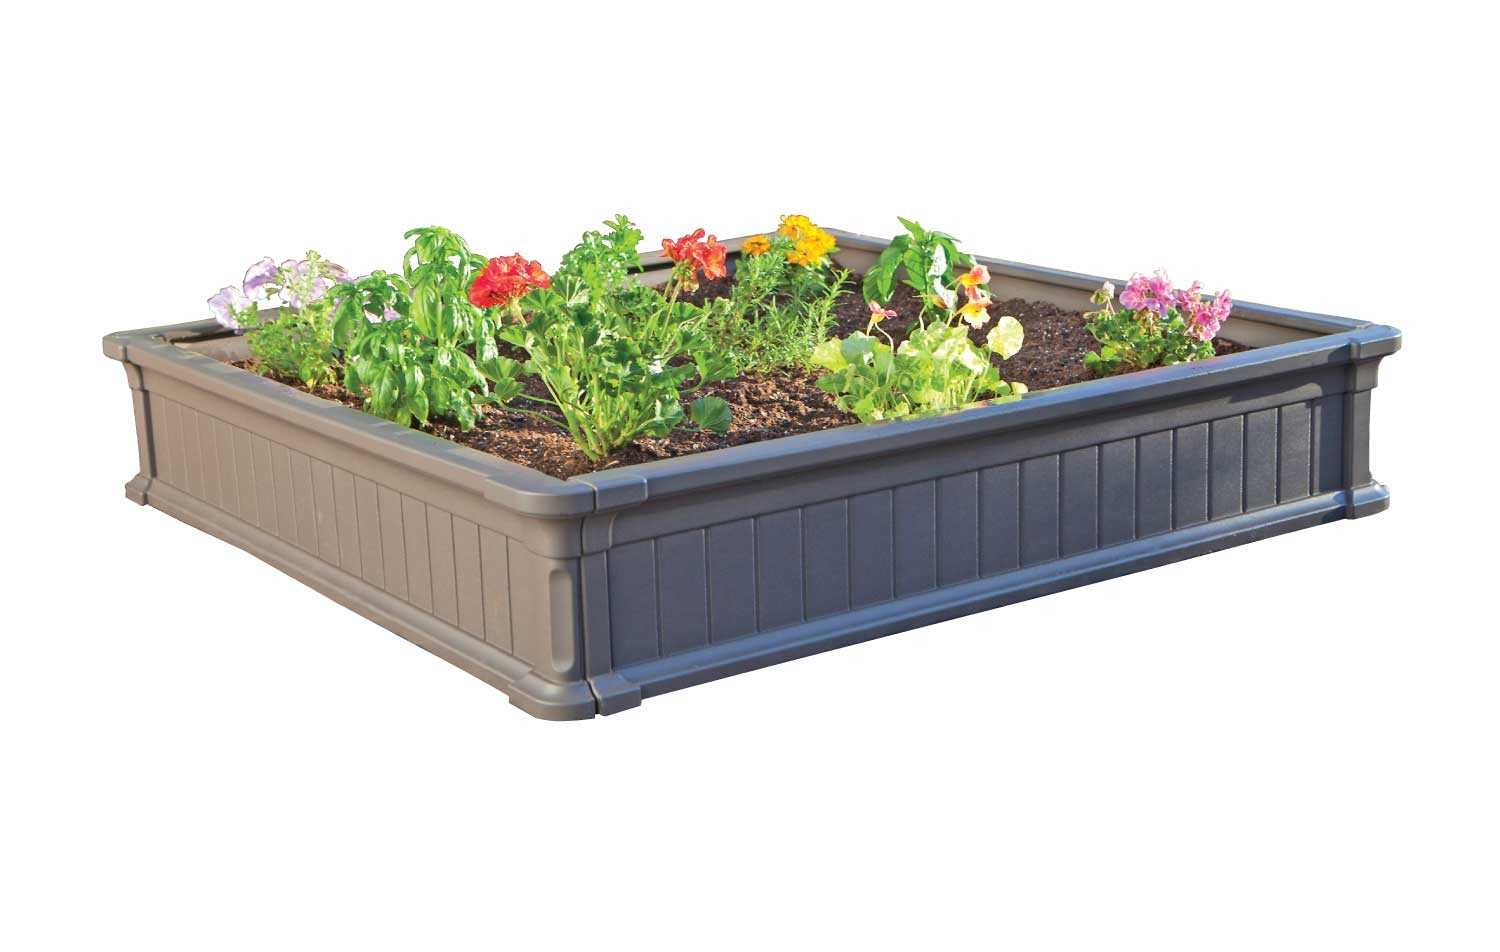 Lifetime 60065 Raised Garden Bed, 4 4 Feet, 1 Bed